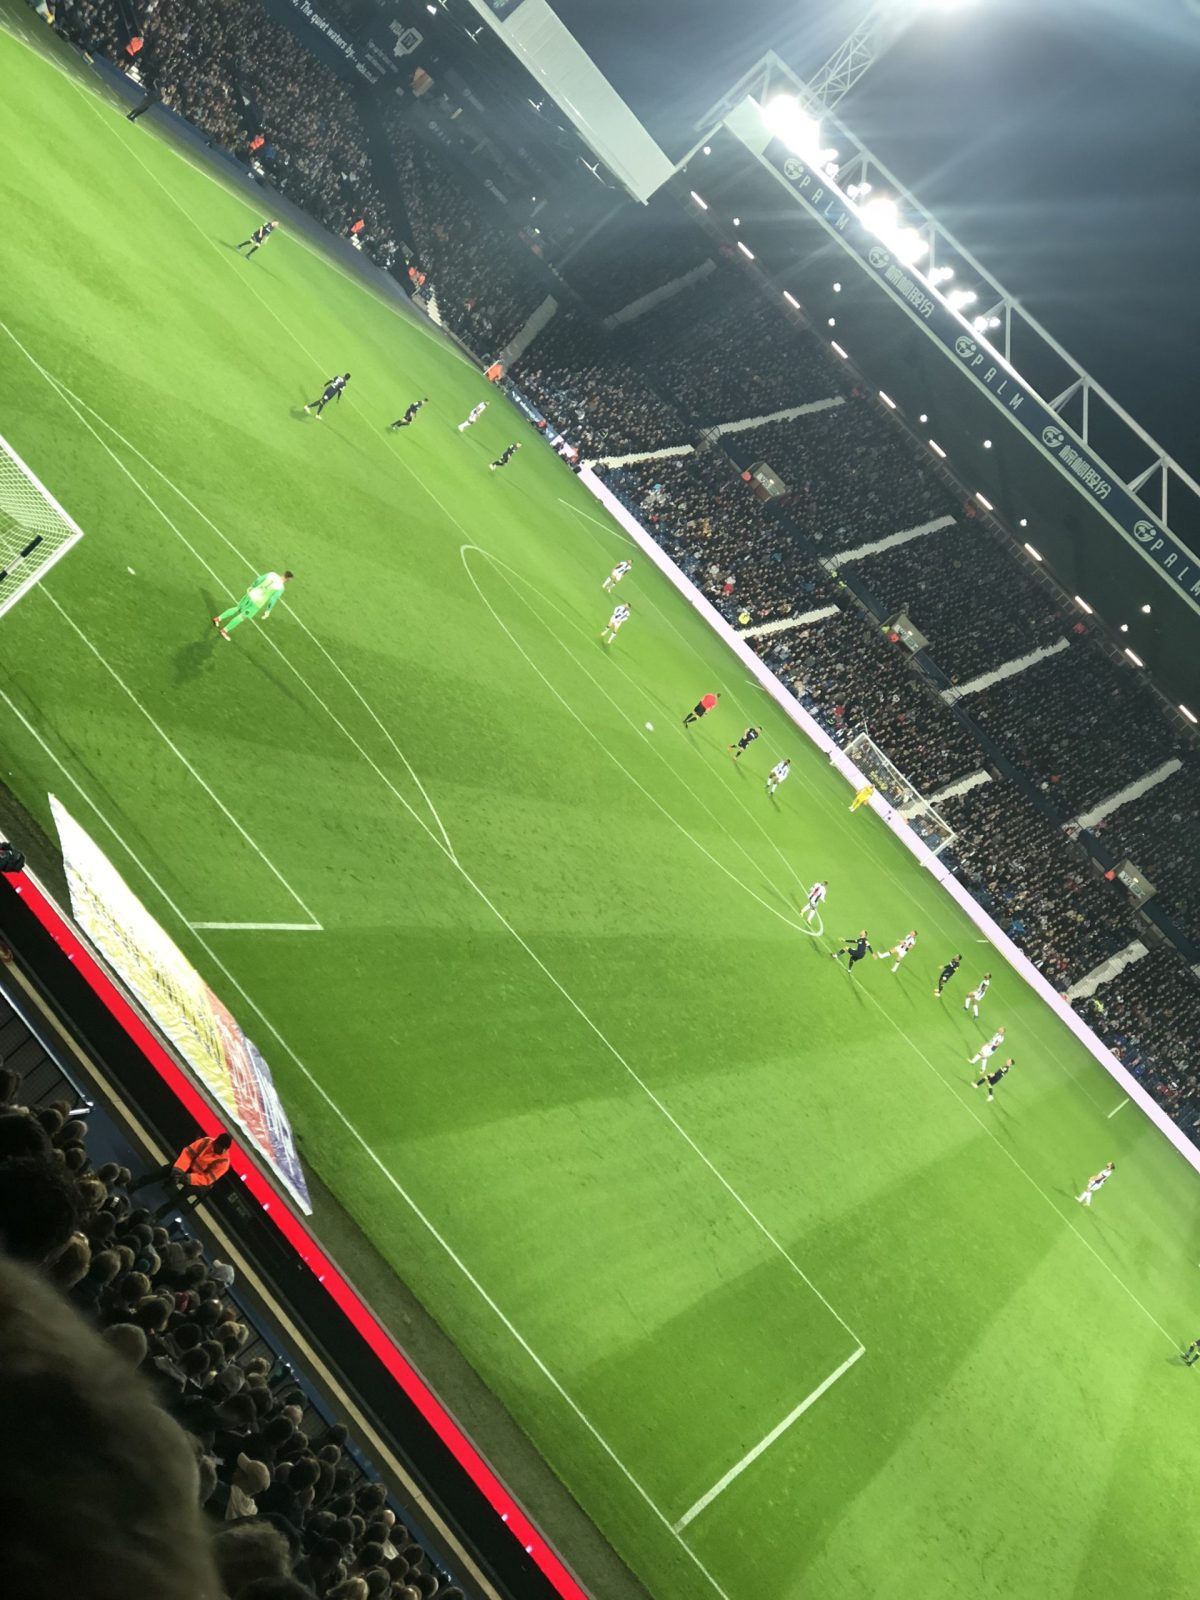 West Brom v Derby County 24-10-2018